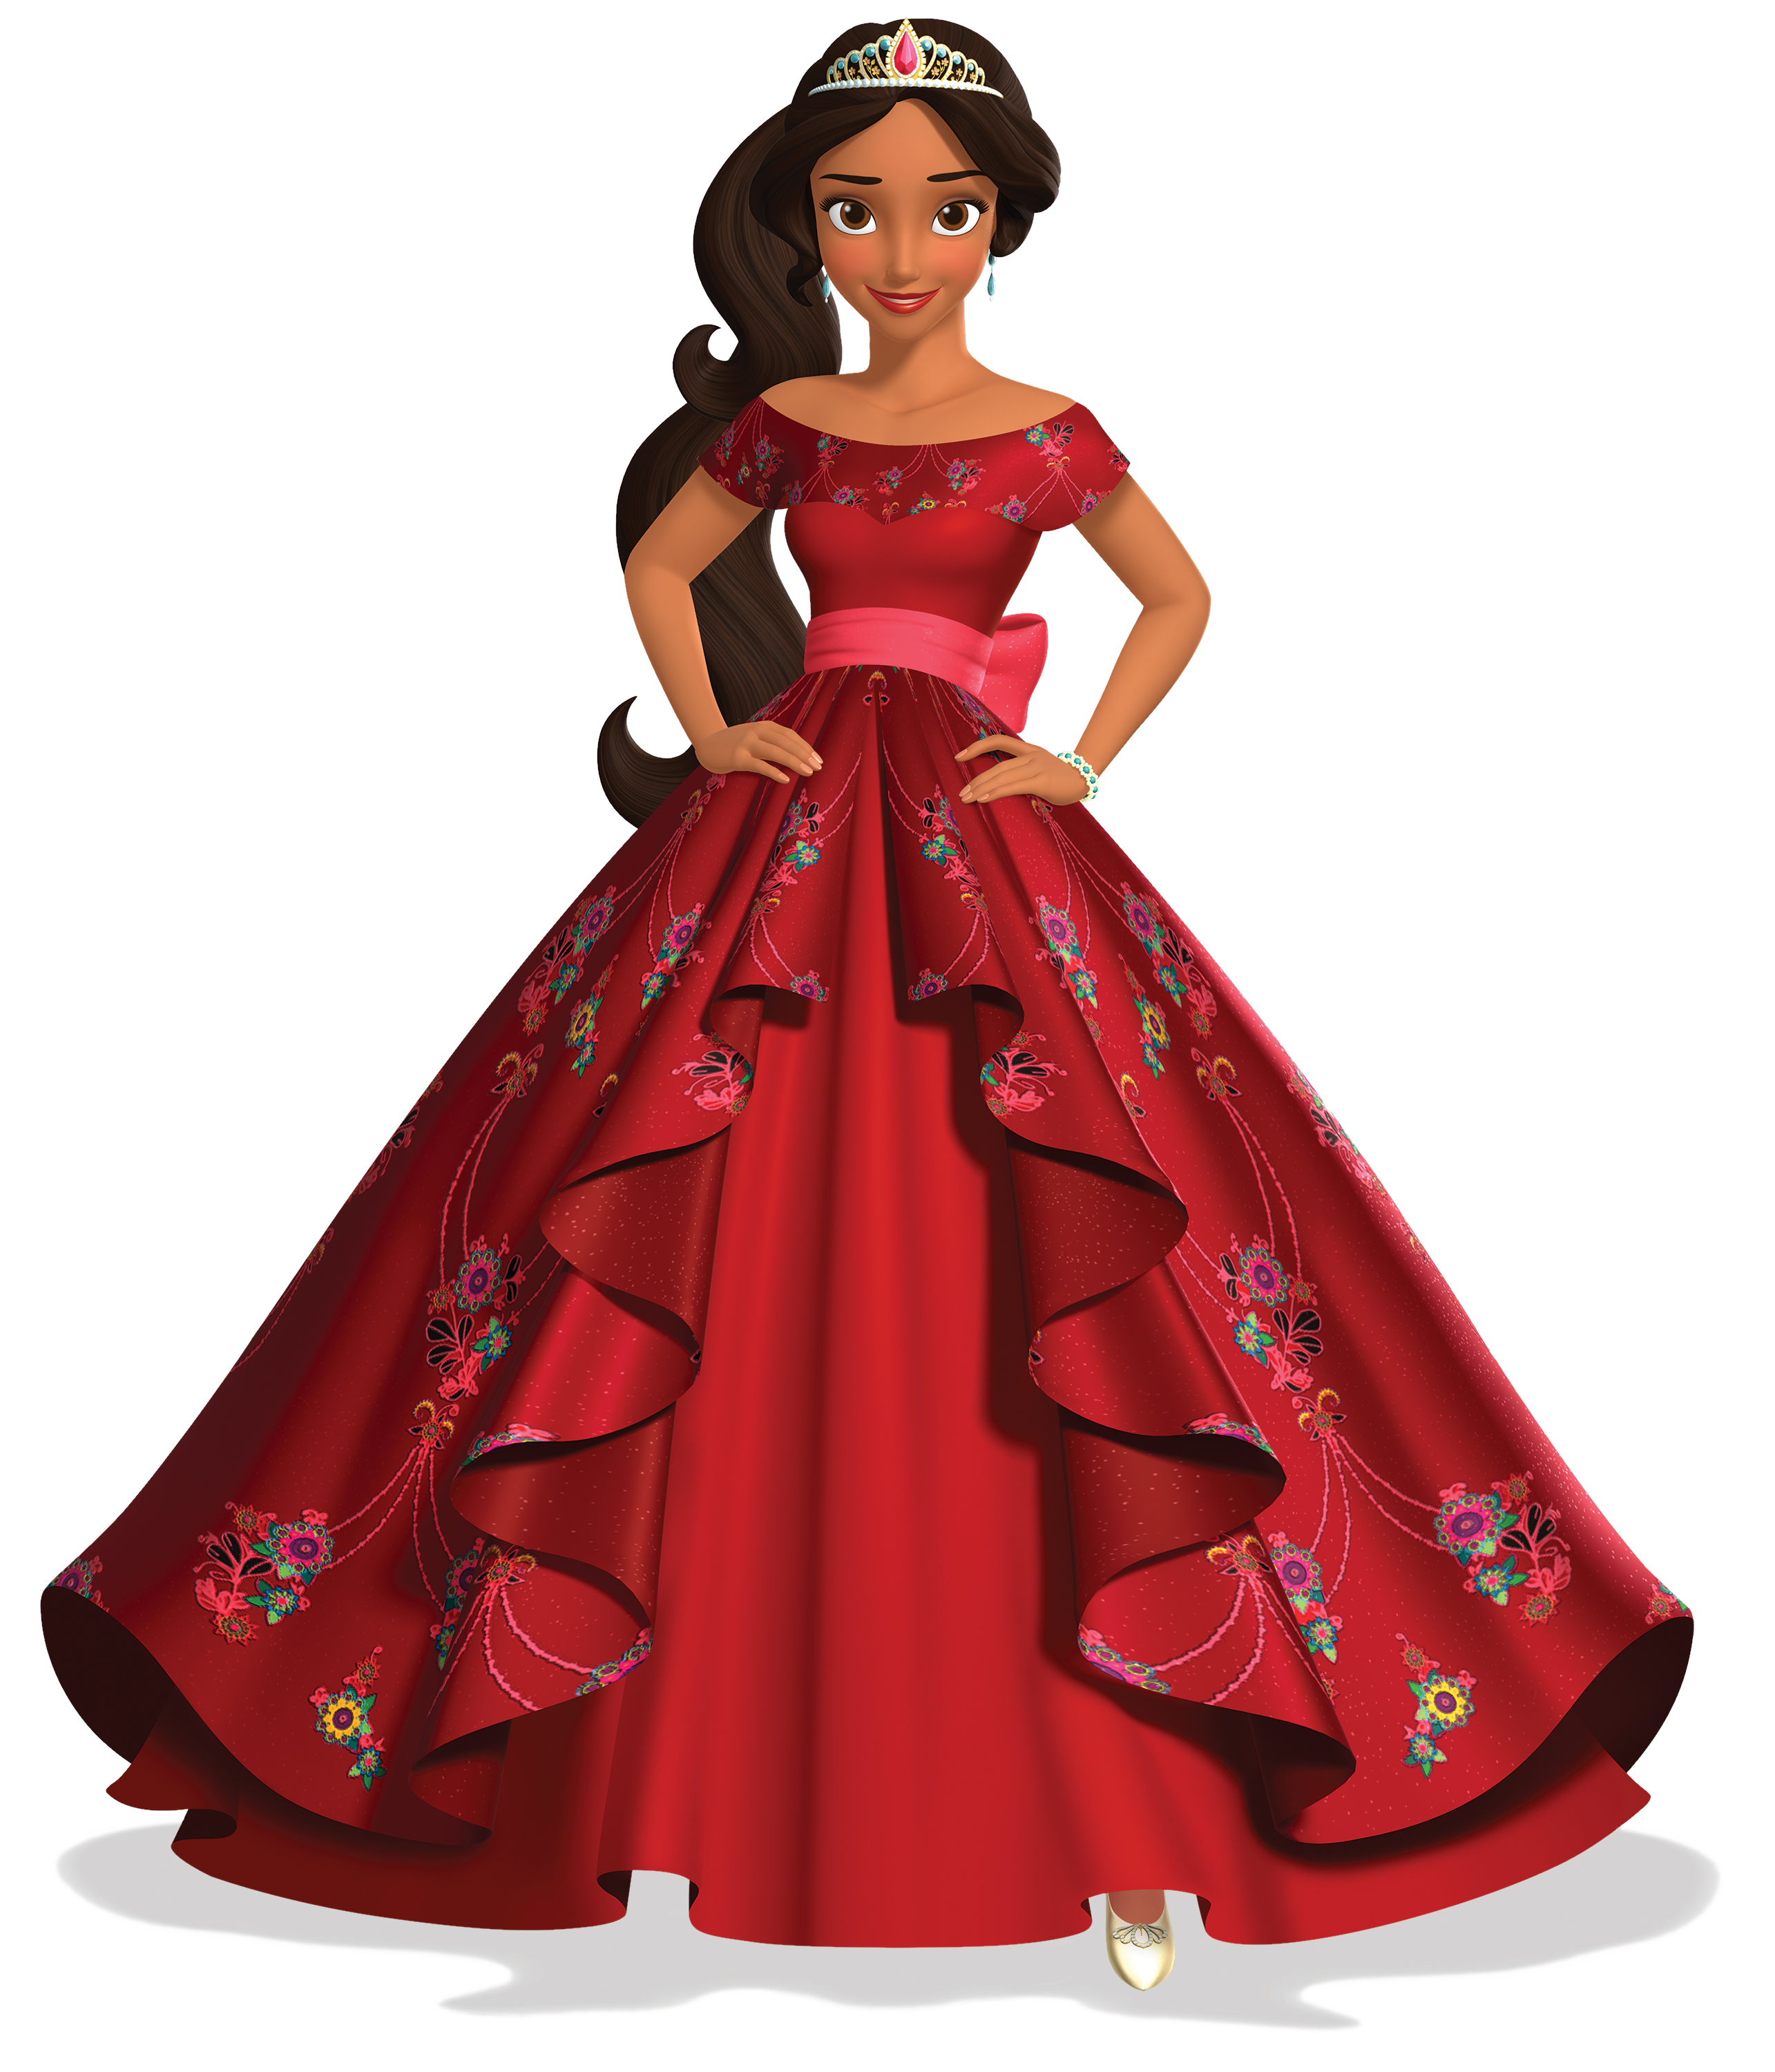 Image - Elena ball gown render.png | Disney Wiki | FANDOM powered by ...